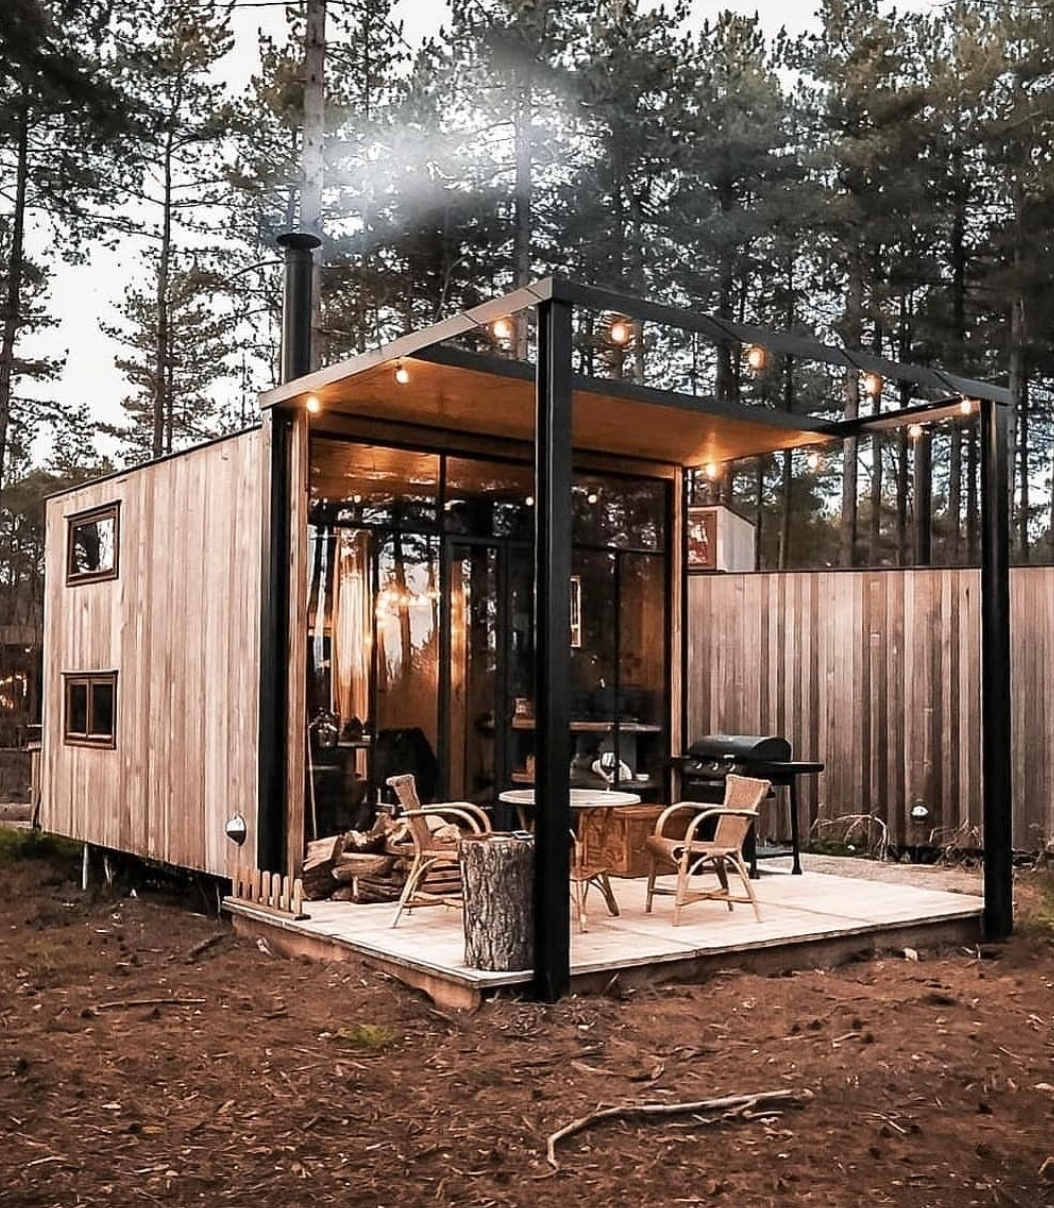 The rustic cabin picture that popped up on my Instagram explore page